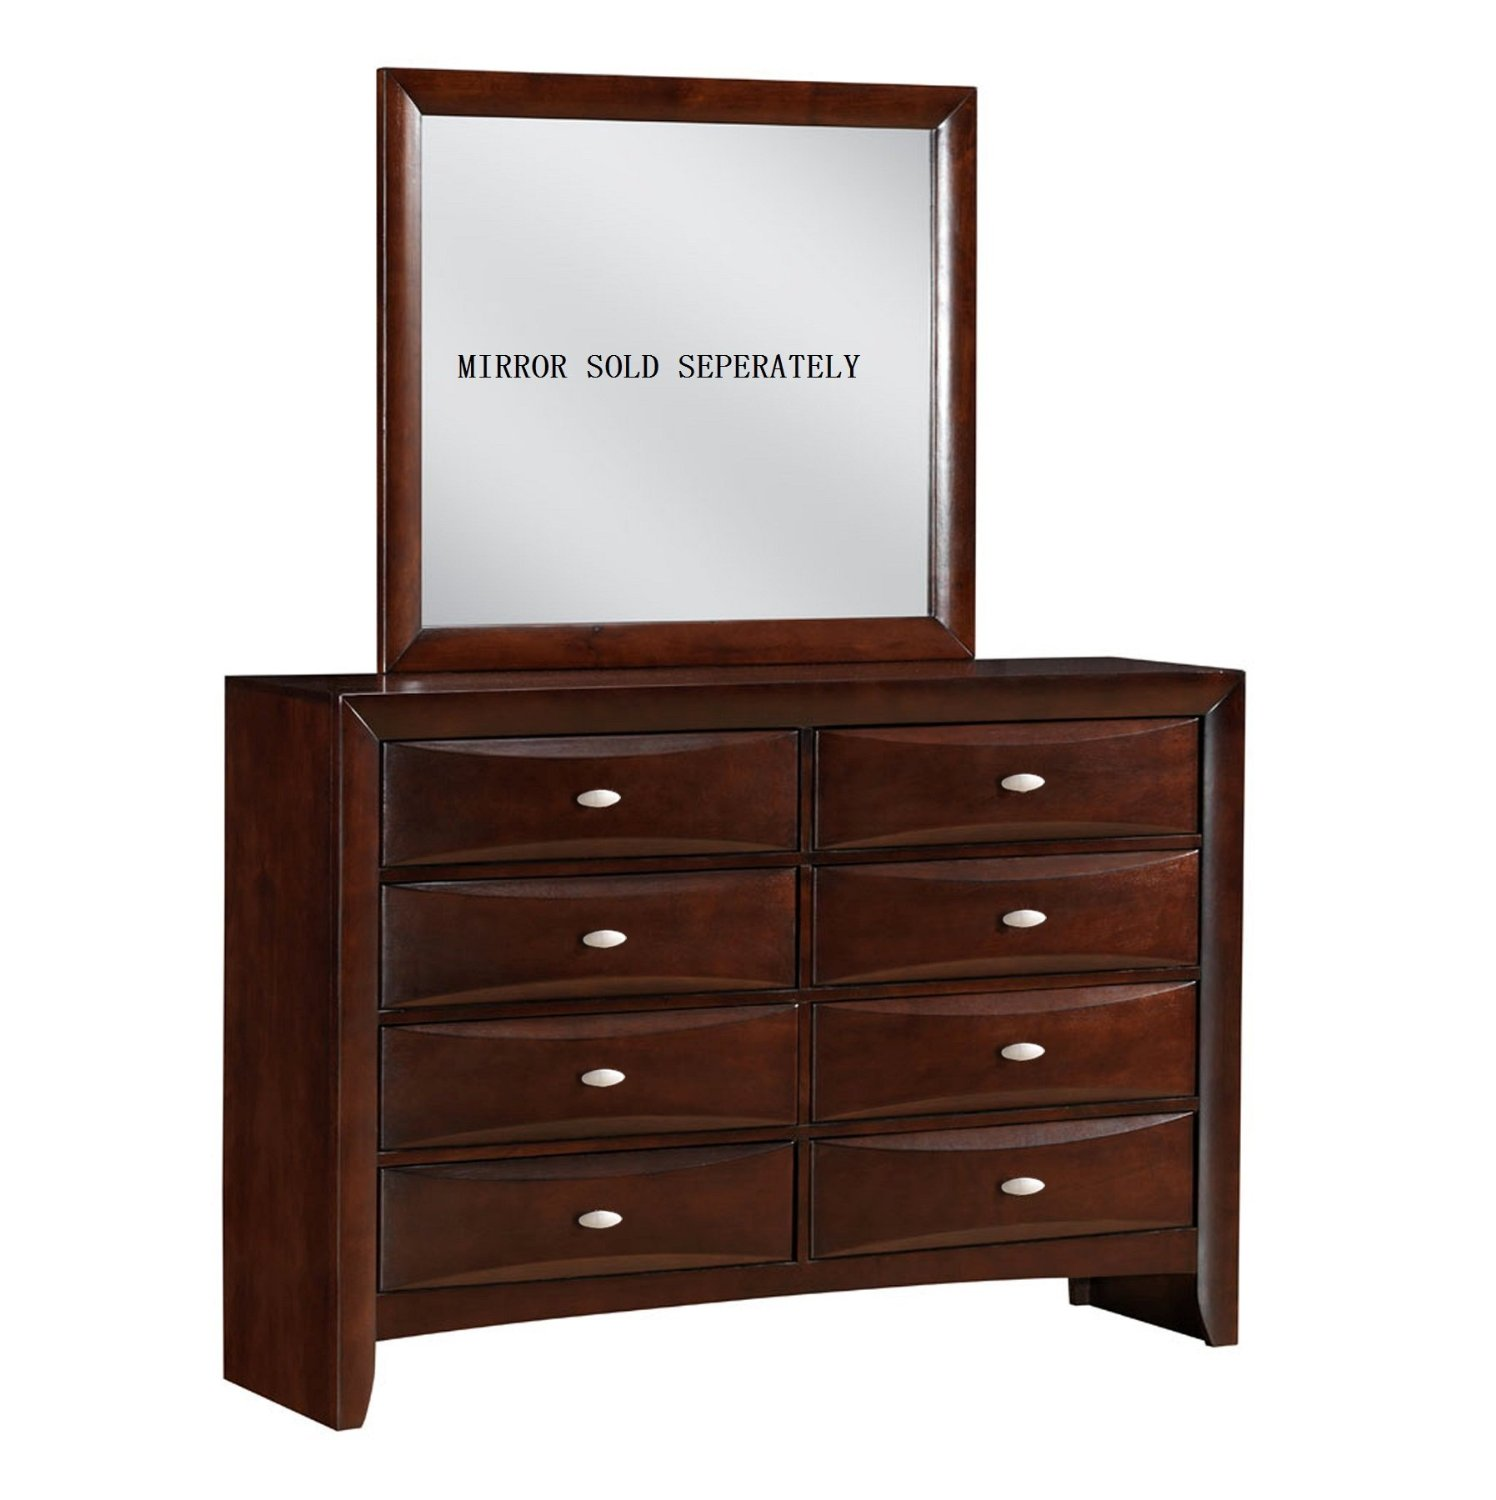 Roundhill Furniture Emily 111 Contemporary Solid Wood Construction Dresser, Mahogany, Merlot